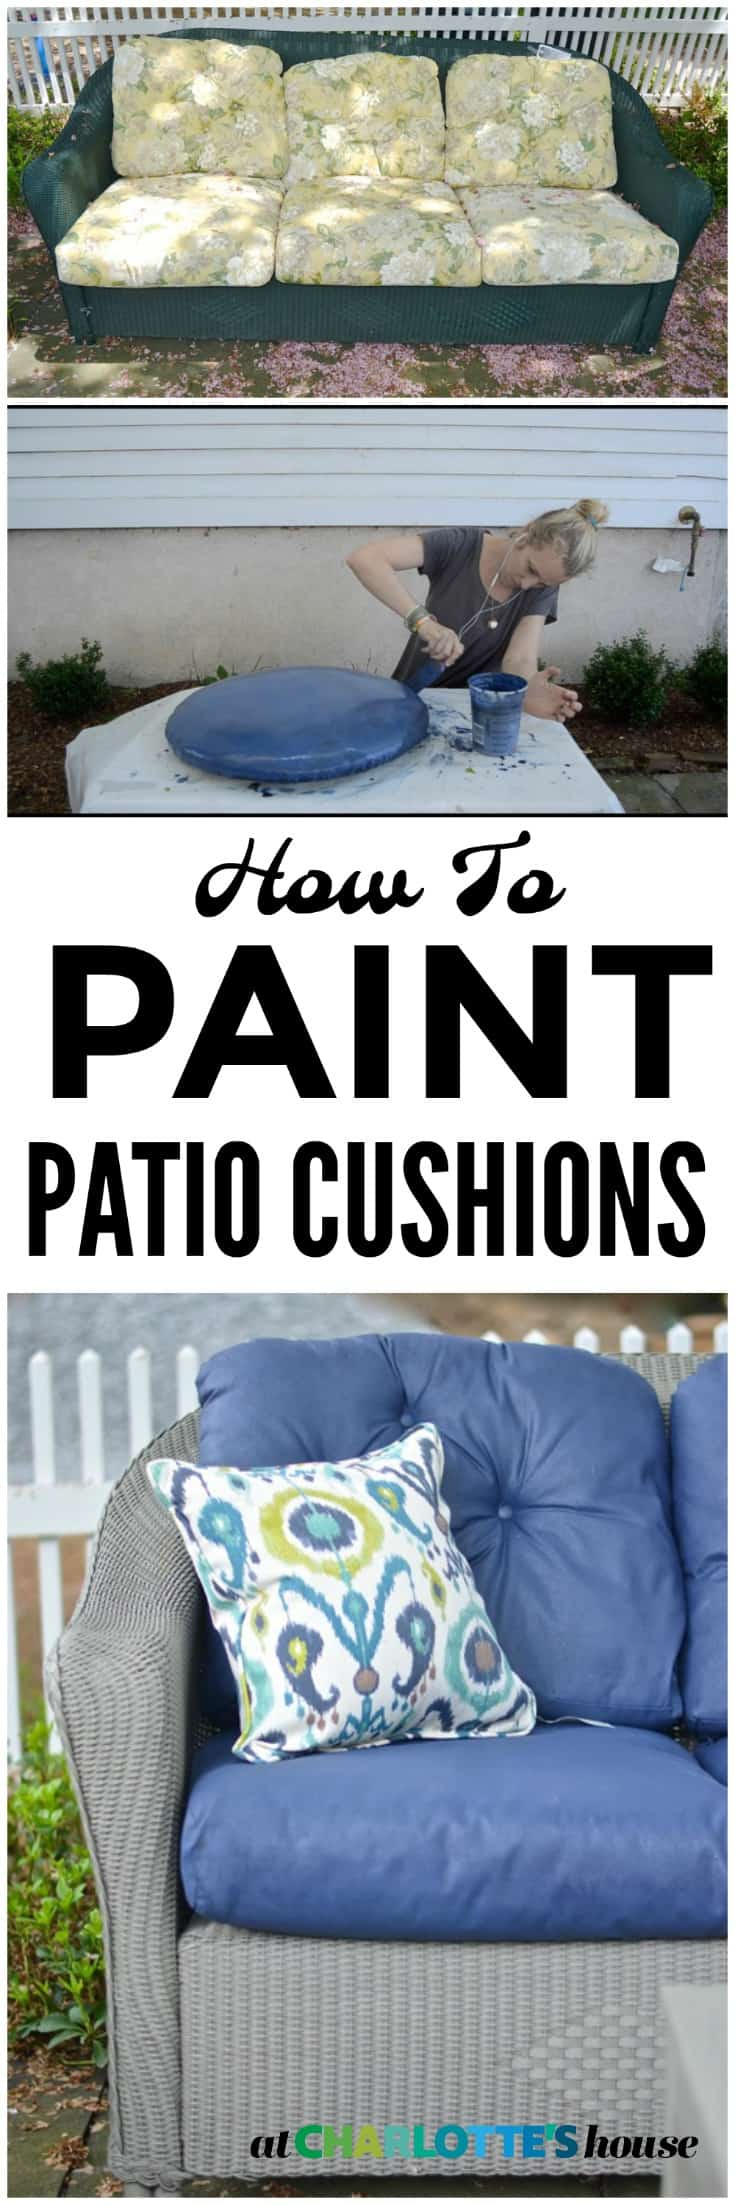 I saved so much money painting these dated floral cushions!